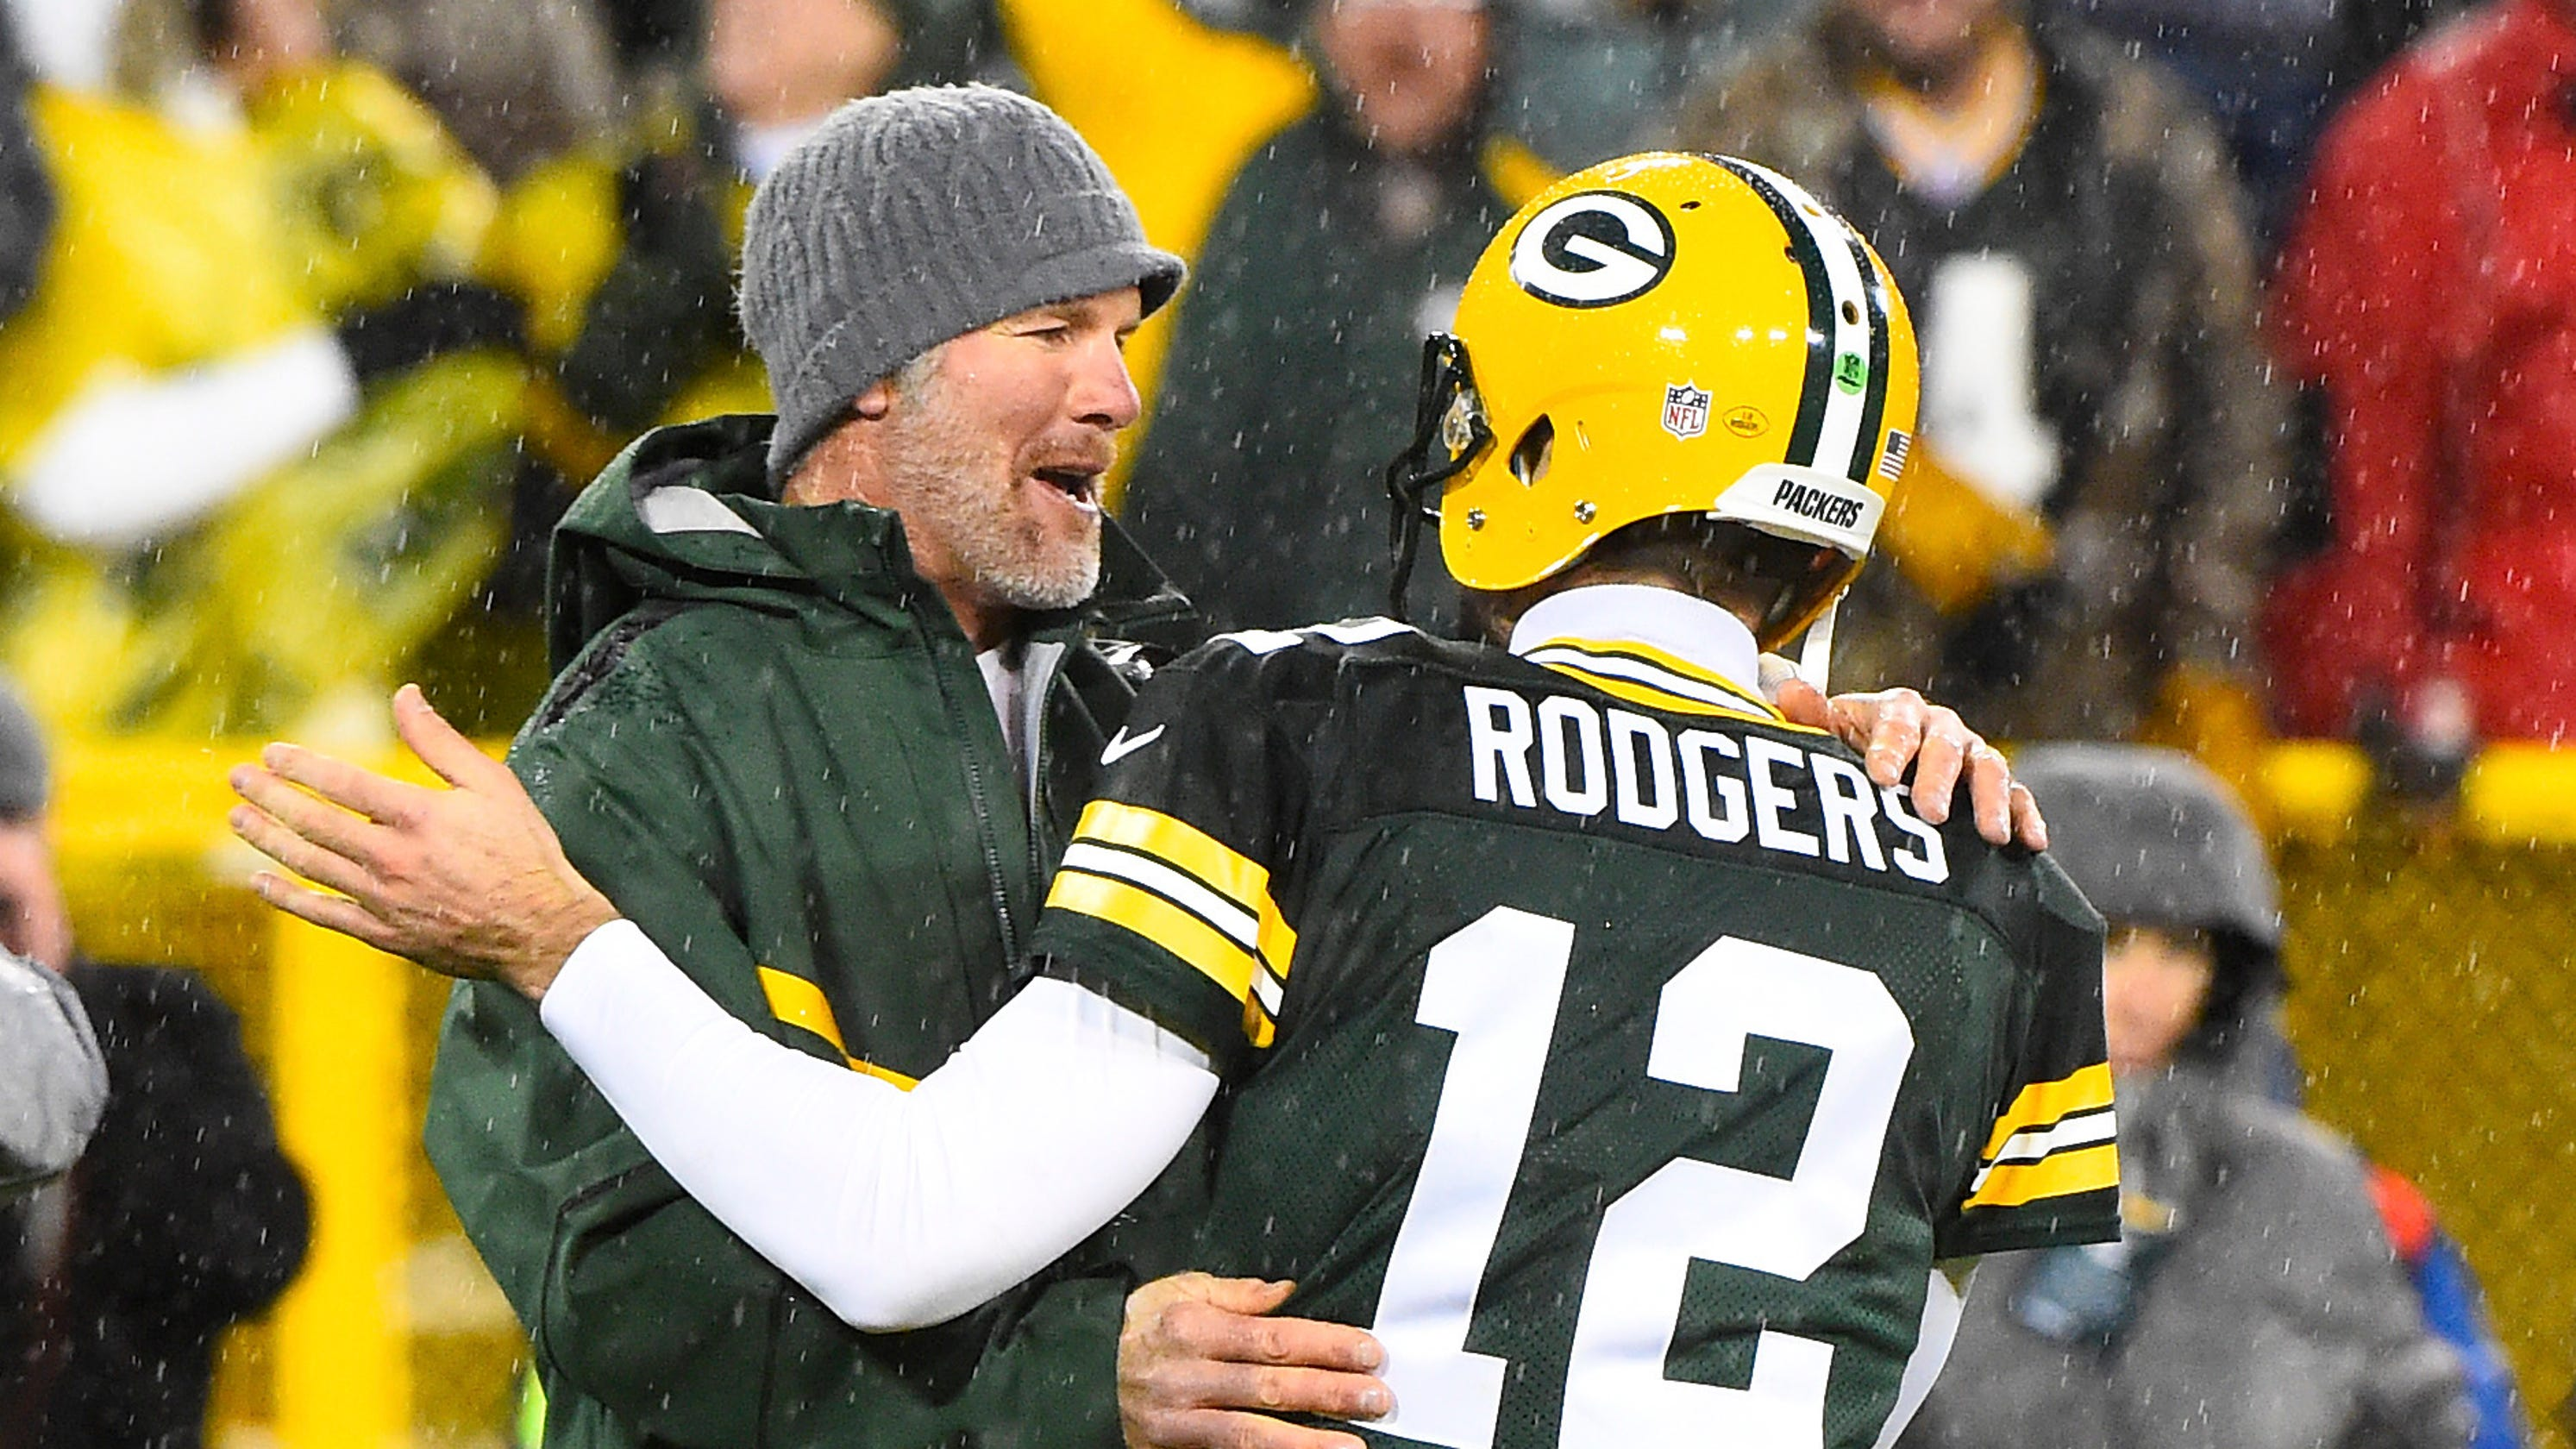 89a6183467d Brett Favre on coaching the Packers: Only 'intrigued' but 'never say never'